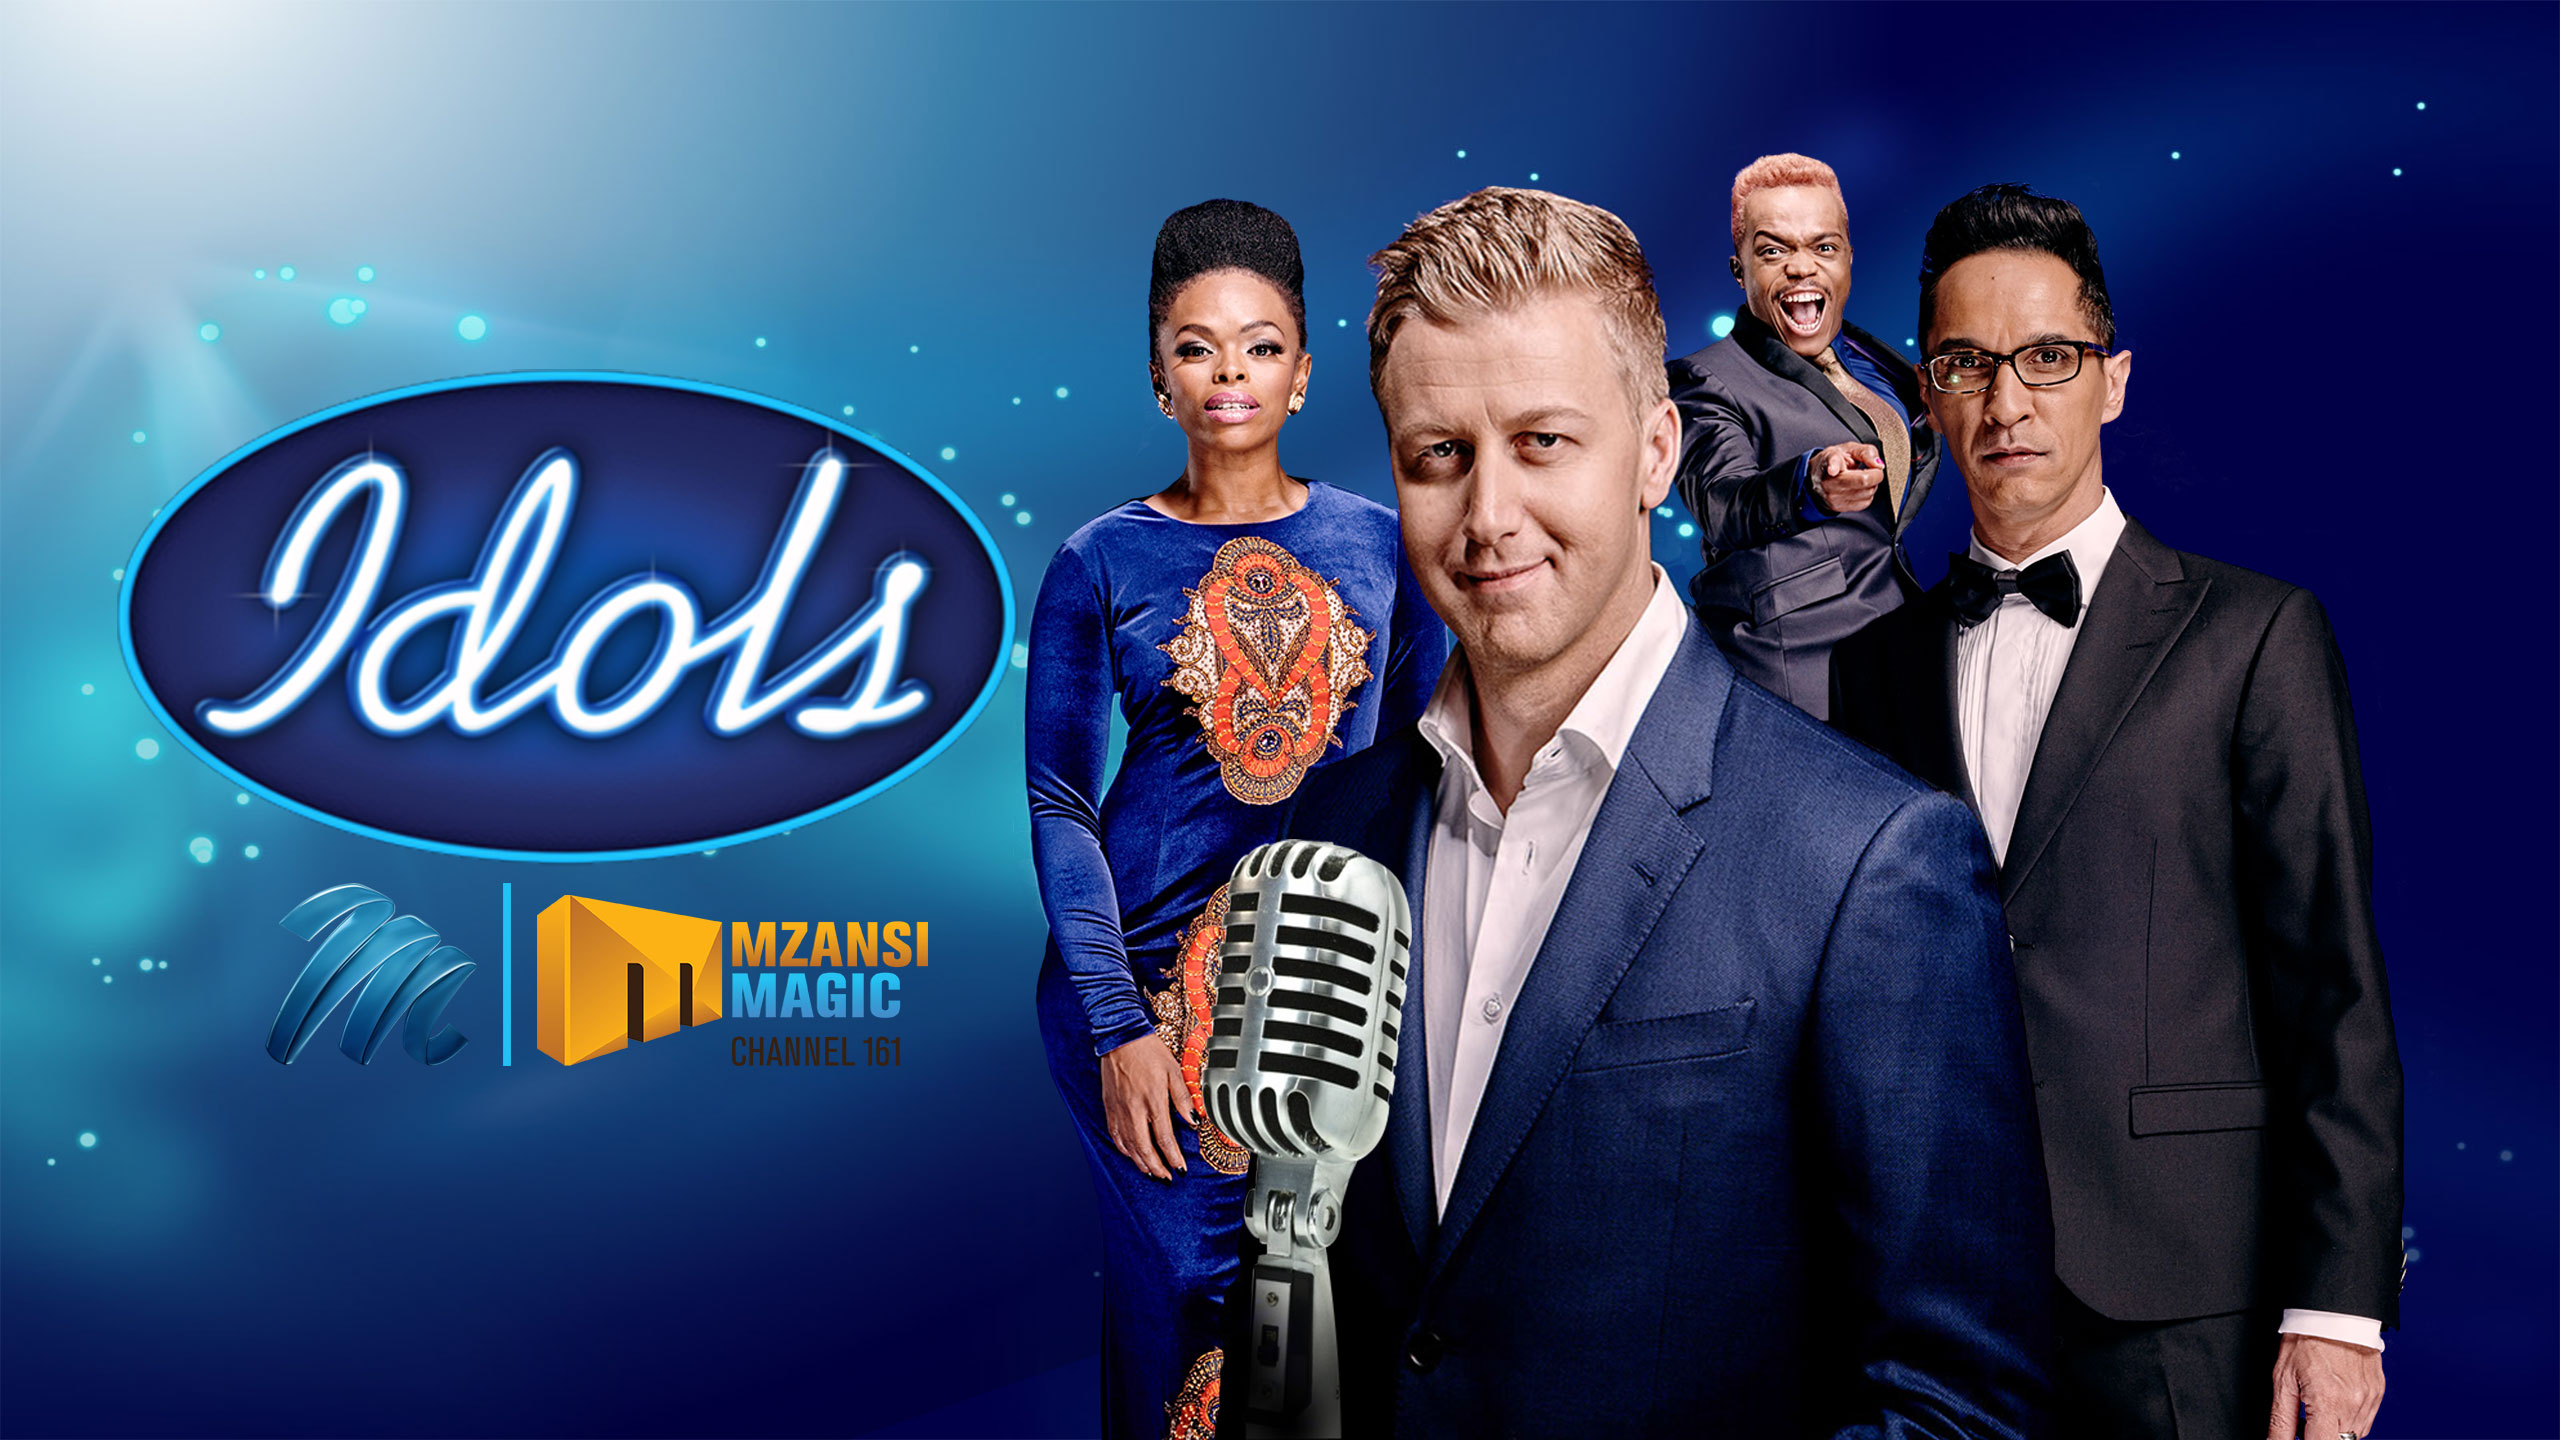 Jennifer Rush brings in 80's theme on Idols SA | The Citizen